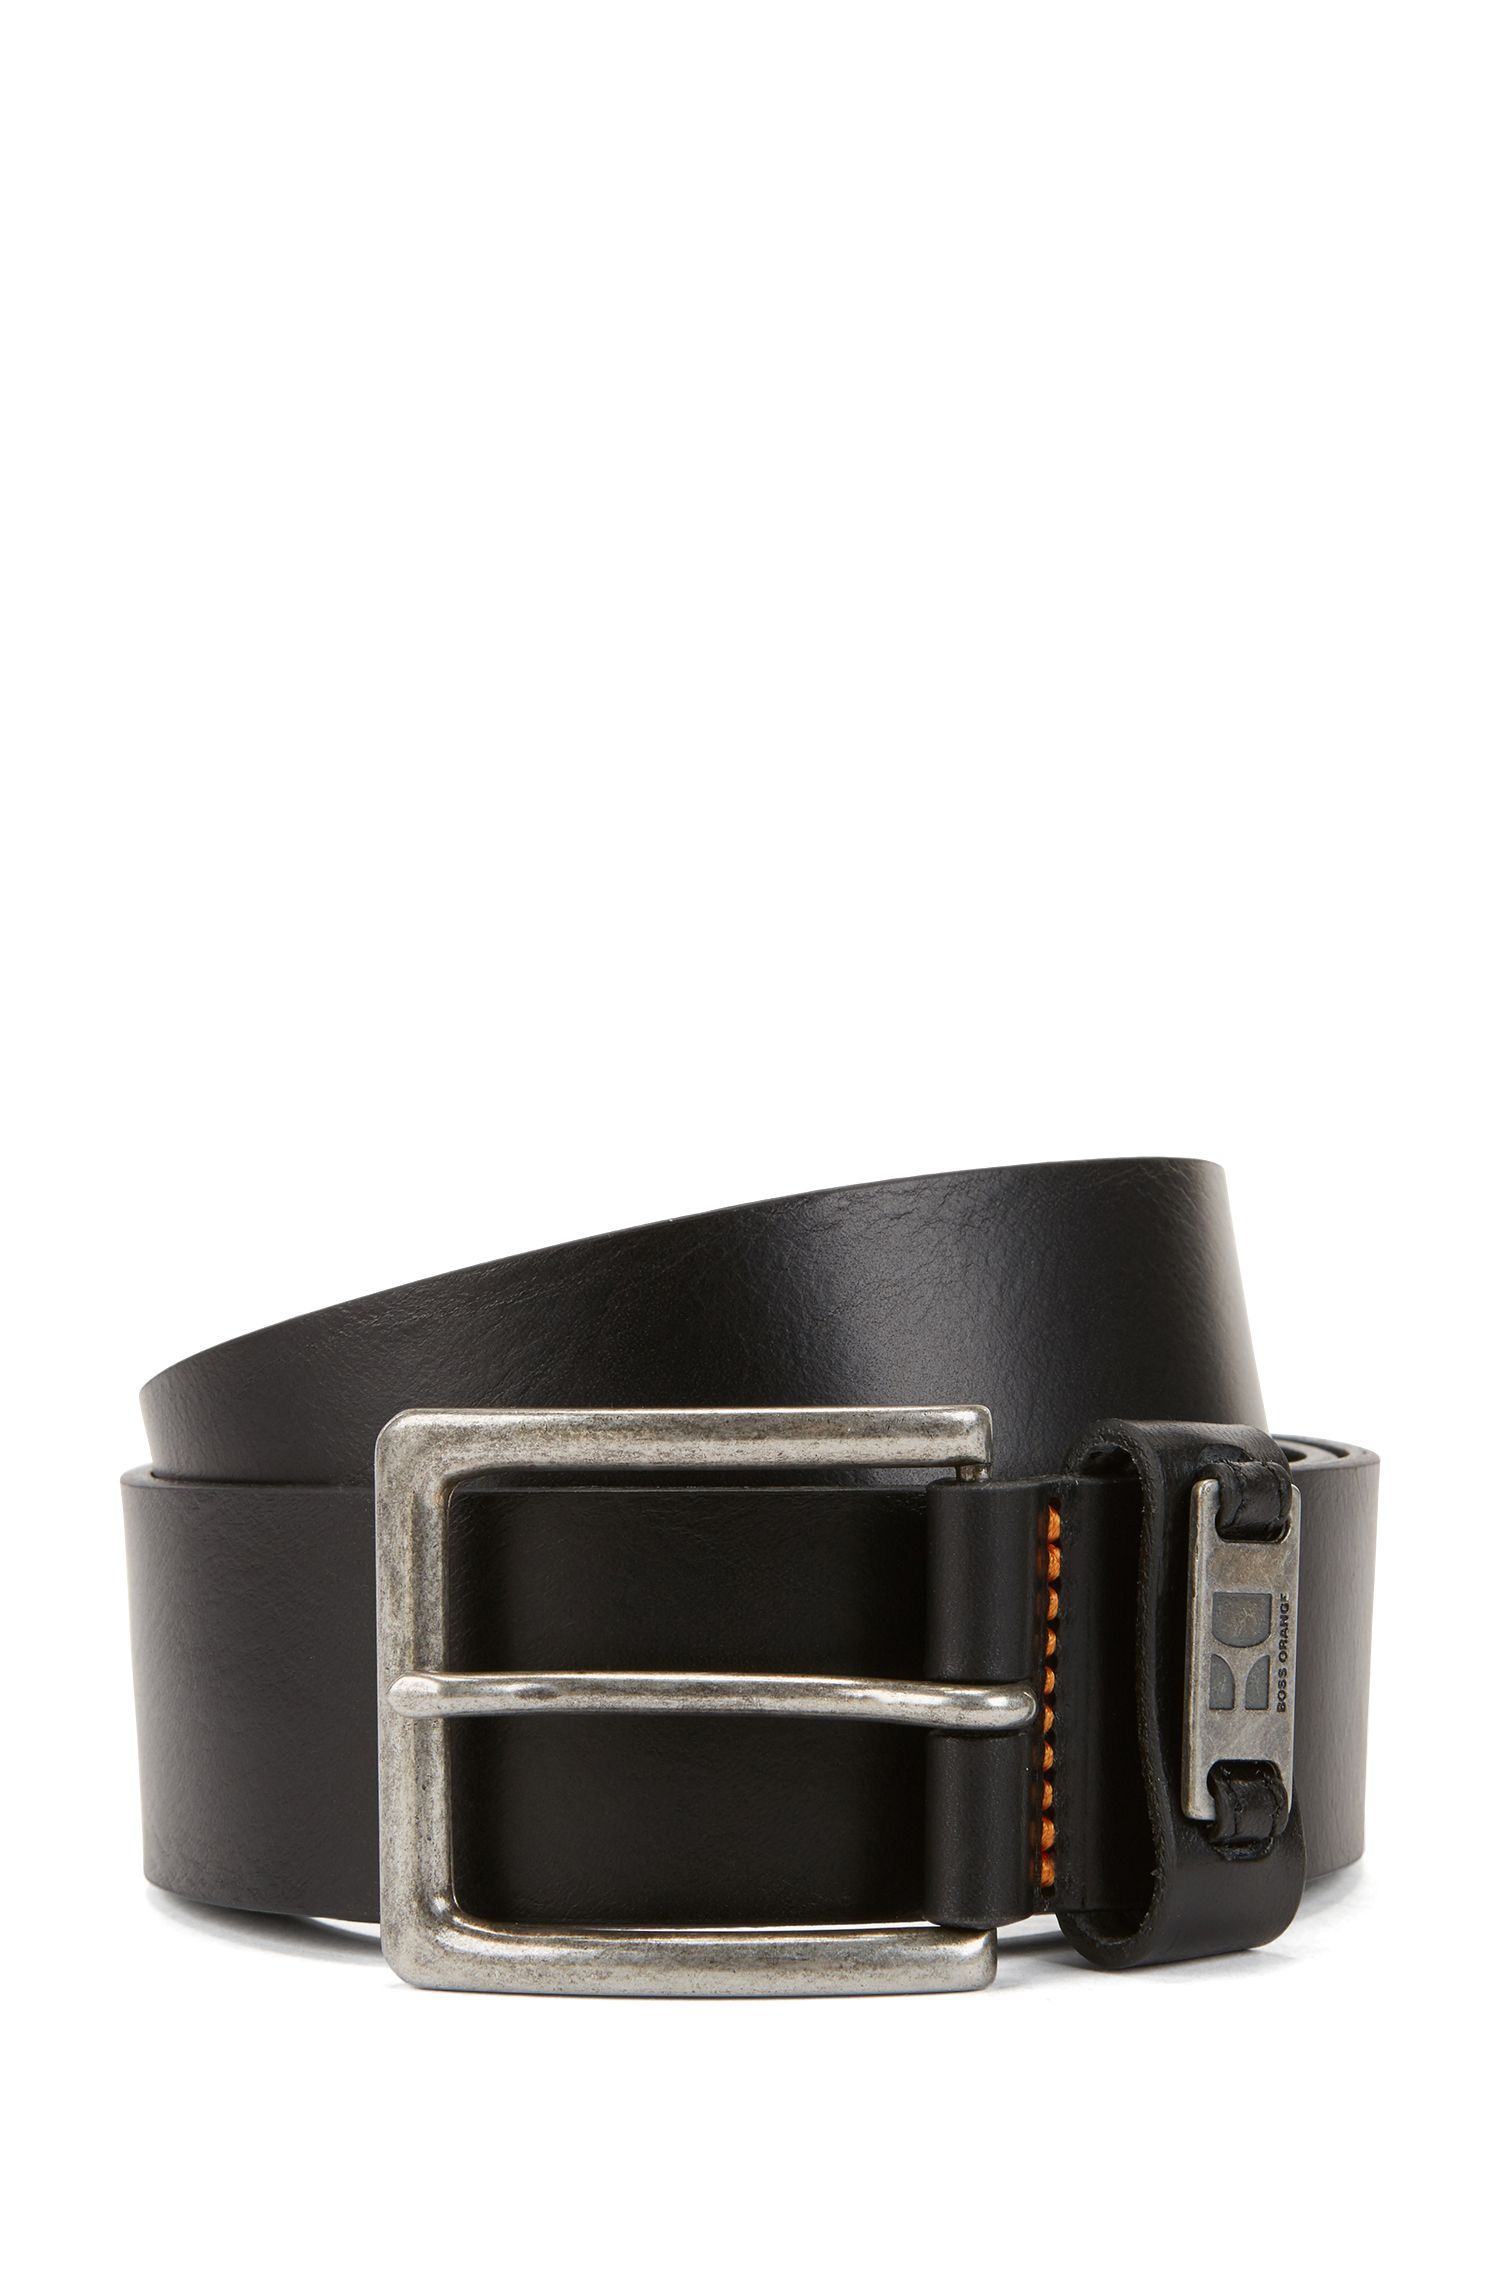 Leather belt with branded metal loop